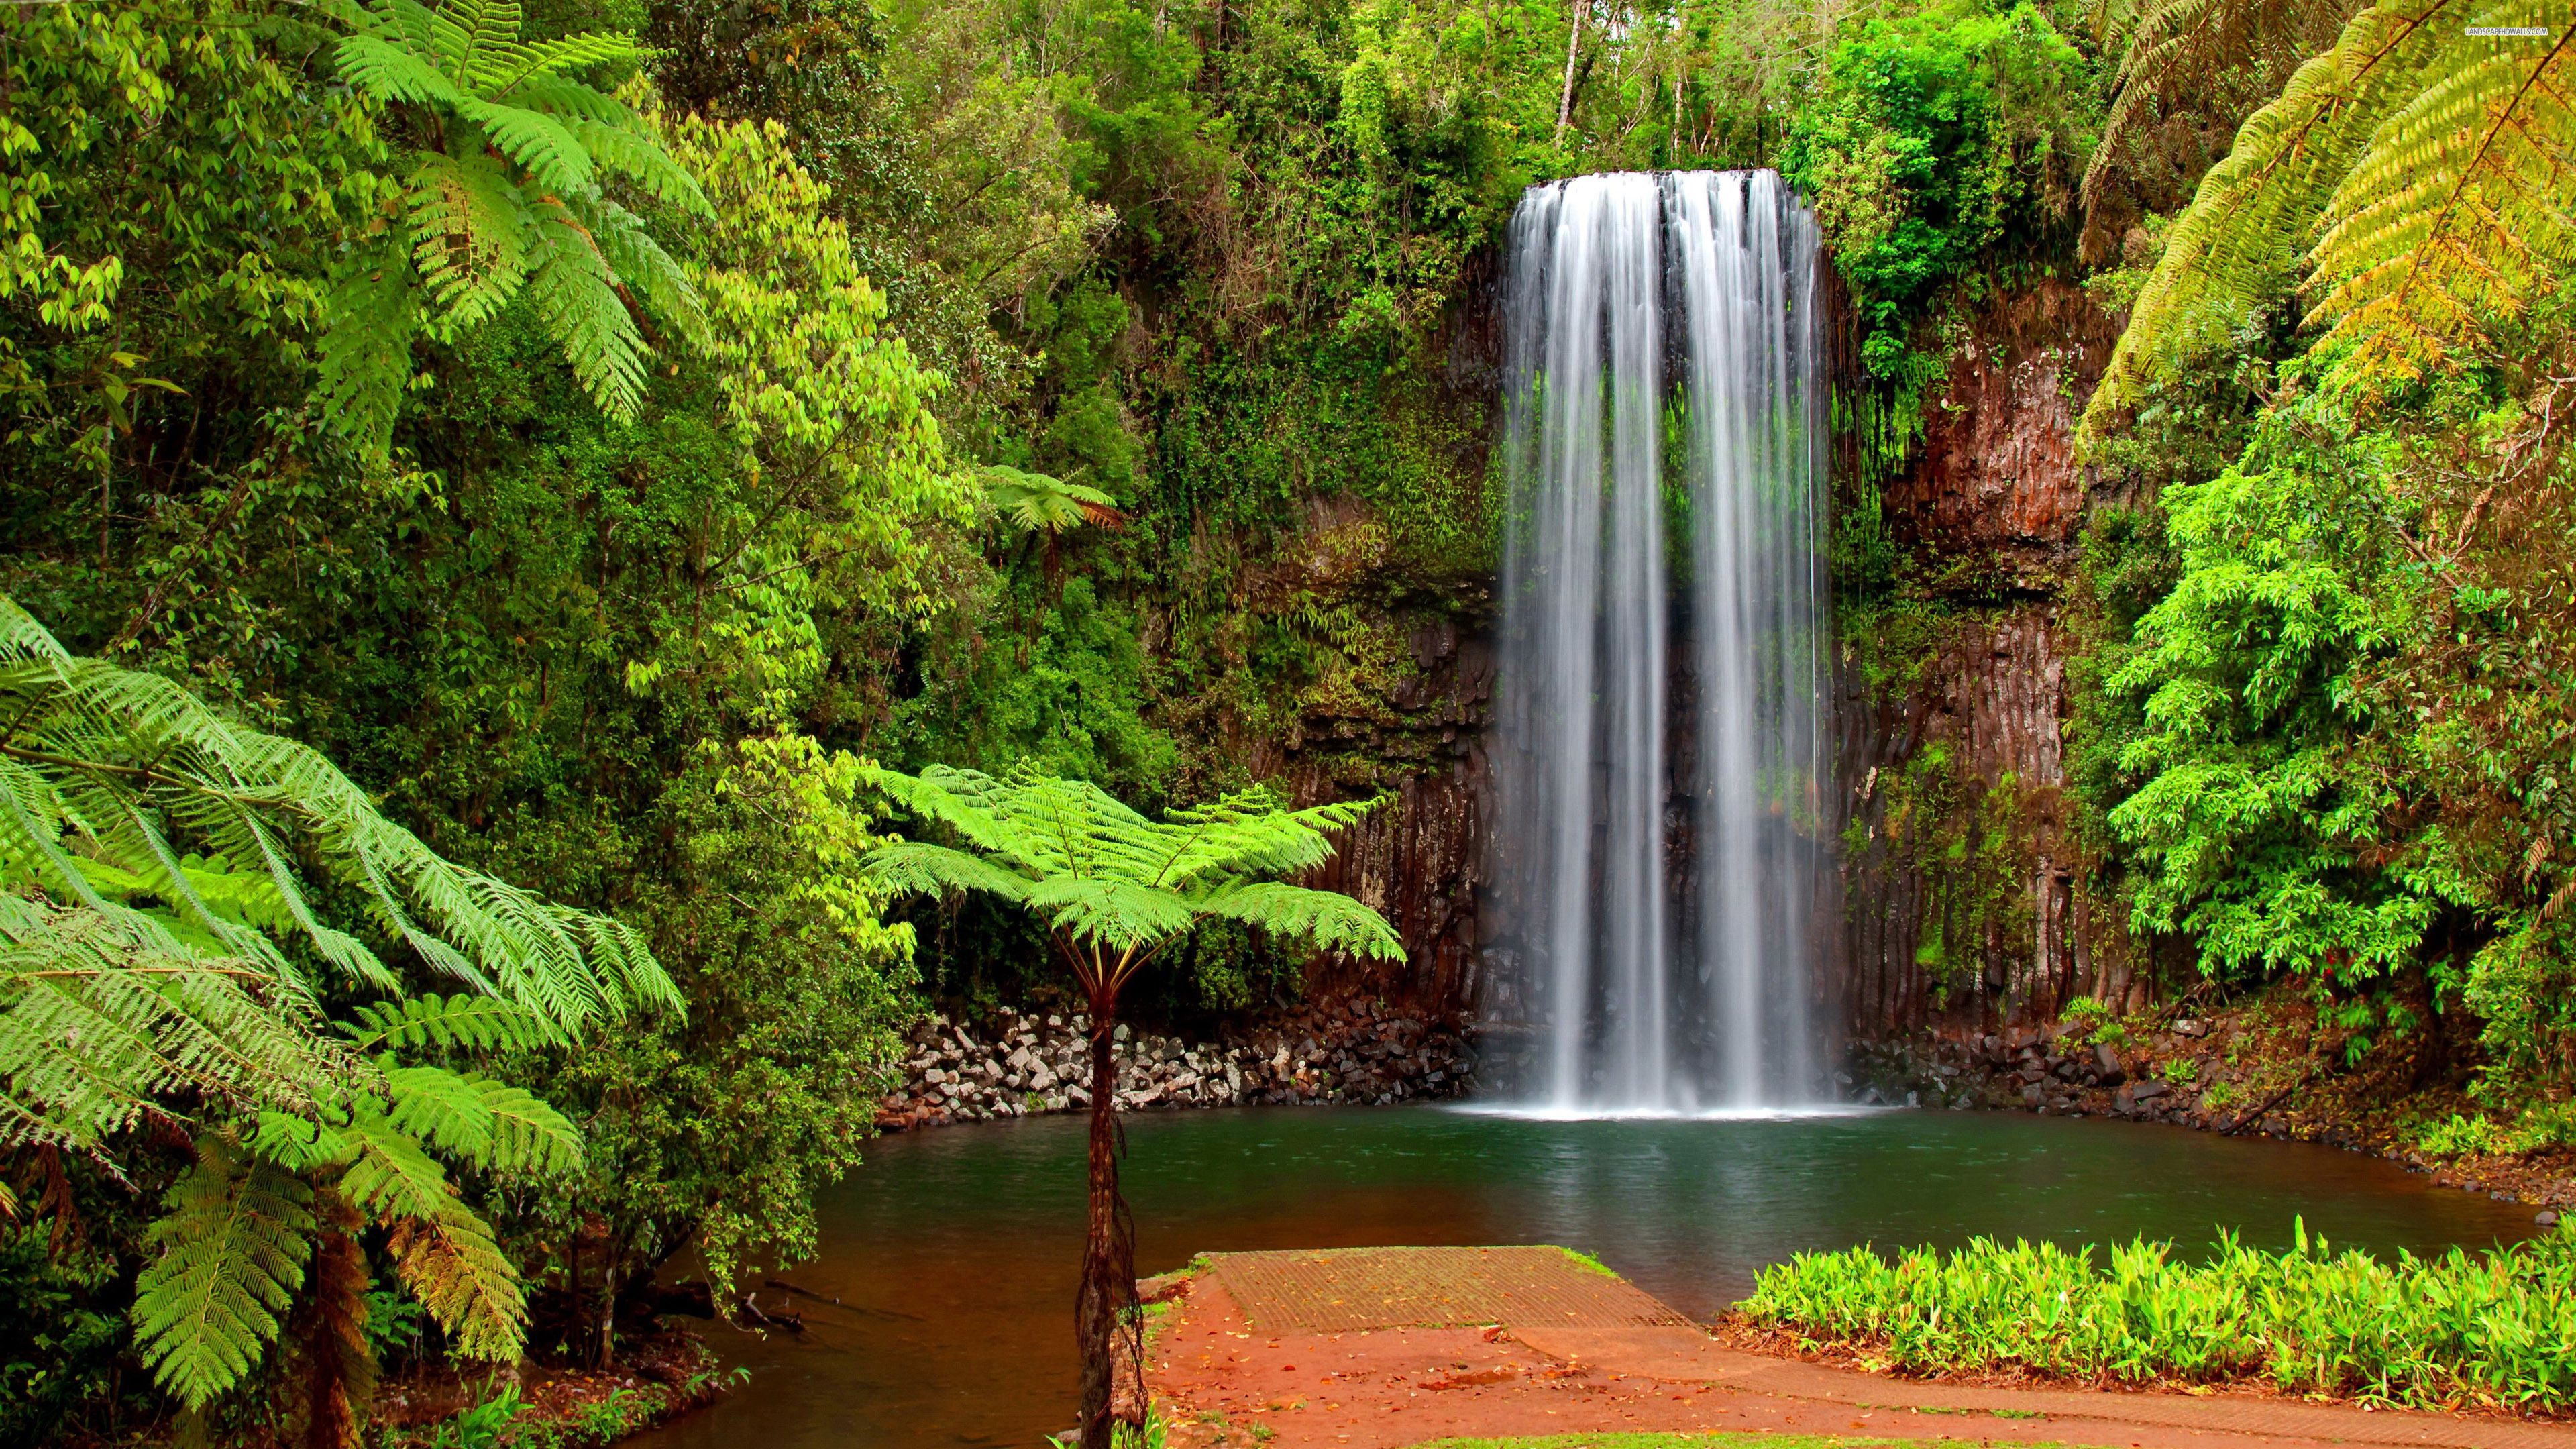 Hidden waterfall wallpaper 938 Wide Screen Wallpaper